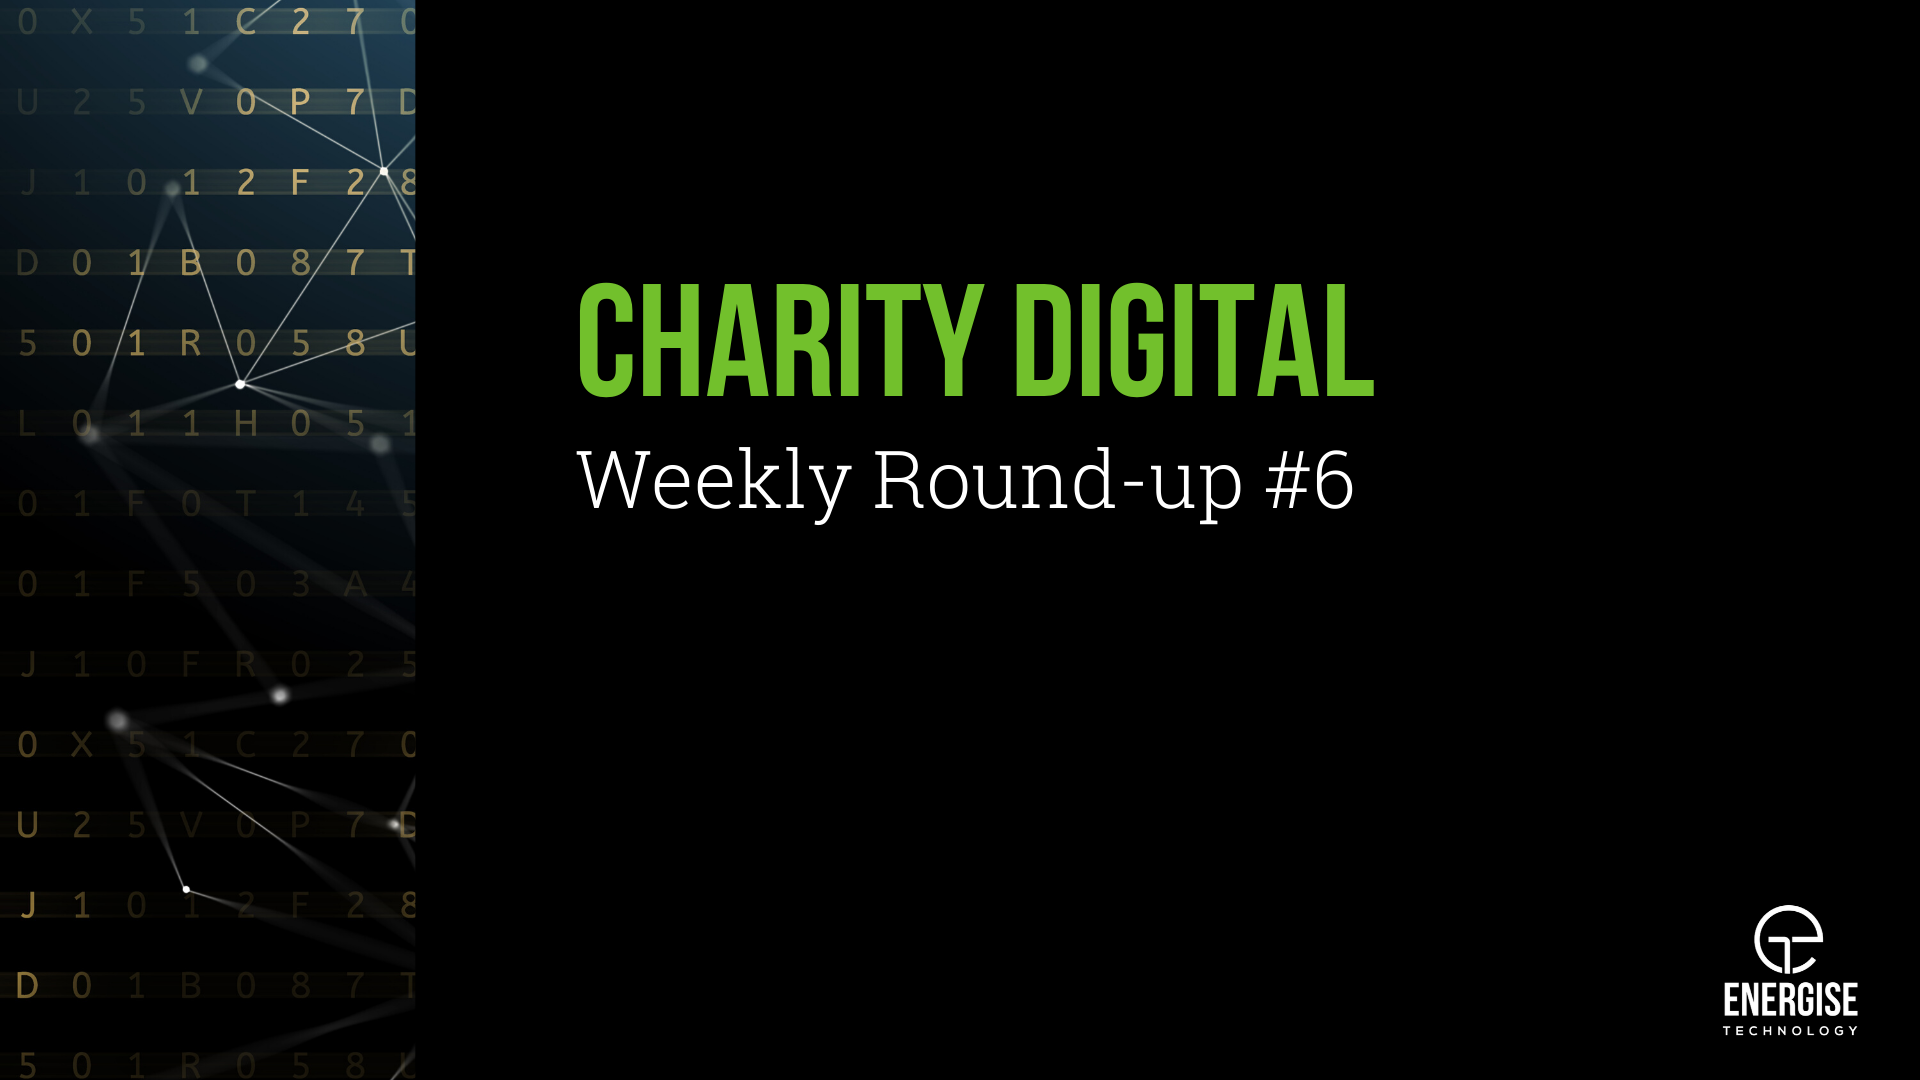 Charity Digital Weekly Roundup #6